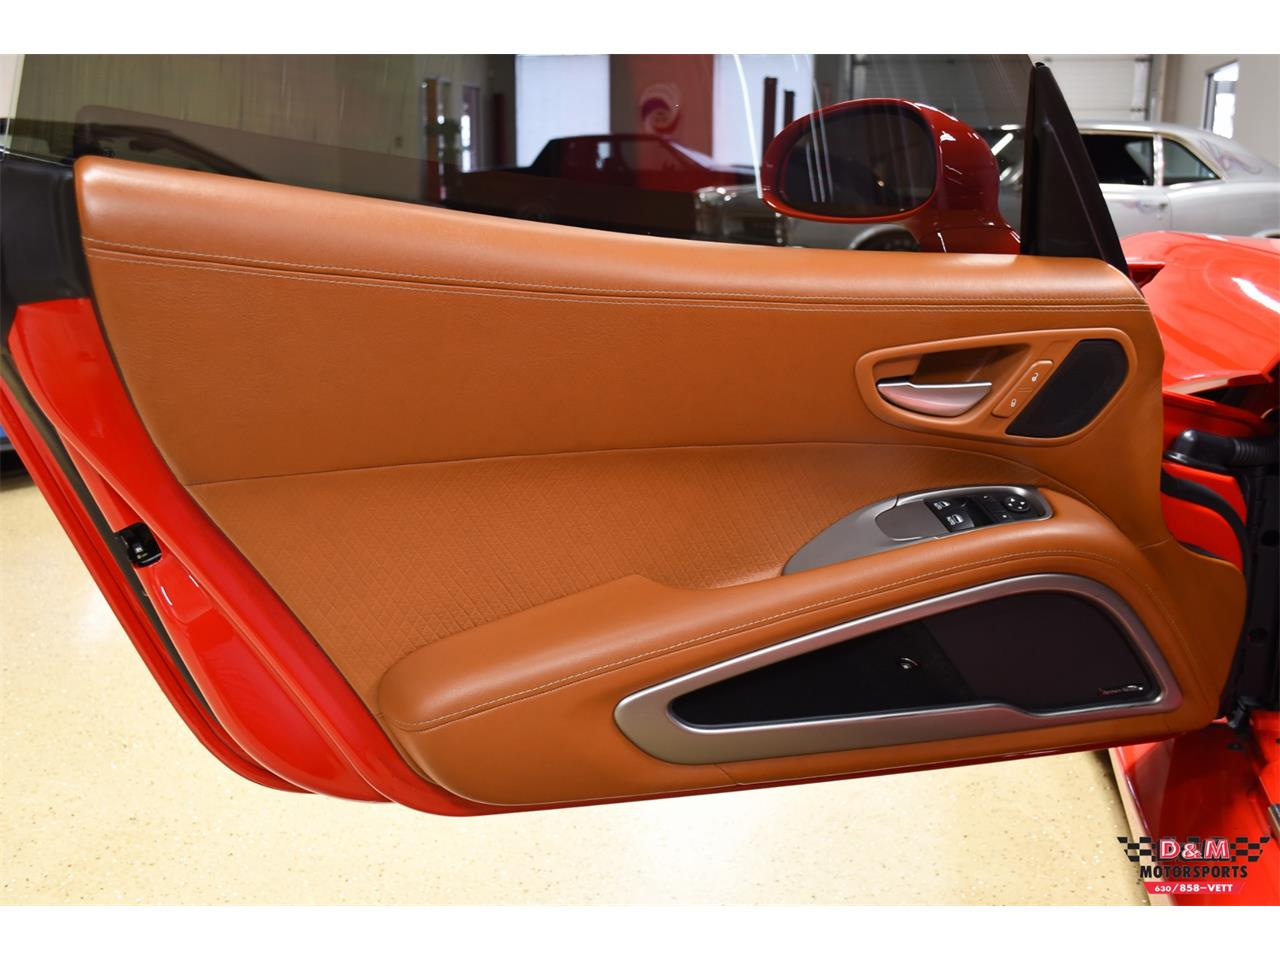 Large Picture of 2013 Dodge Viper located in Illinois - $74,995.00 Offered by D & M Motorsports - PTPC